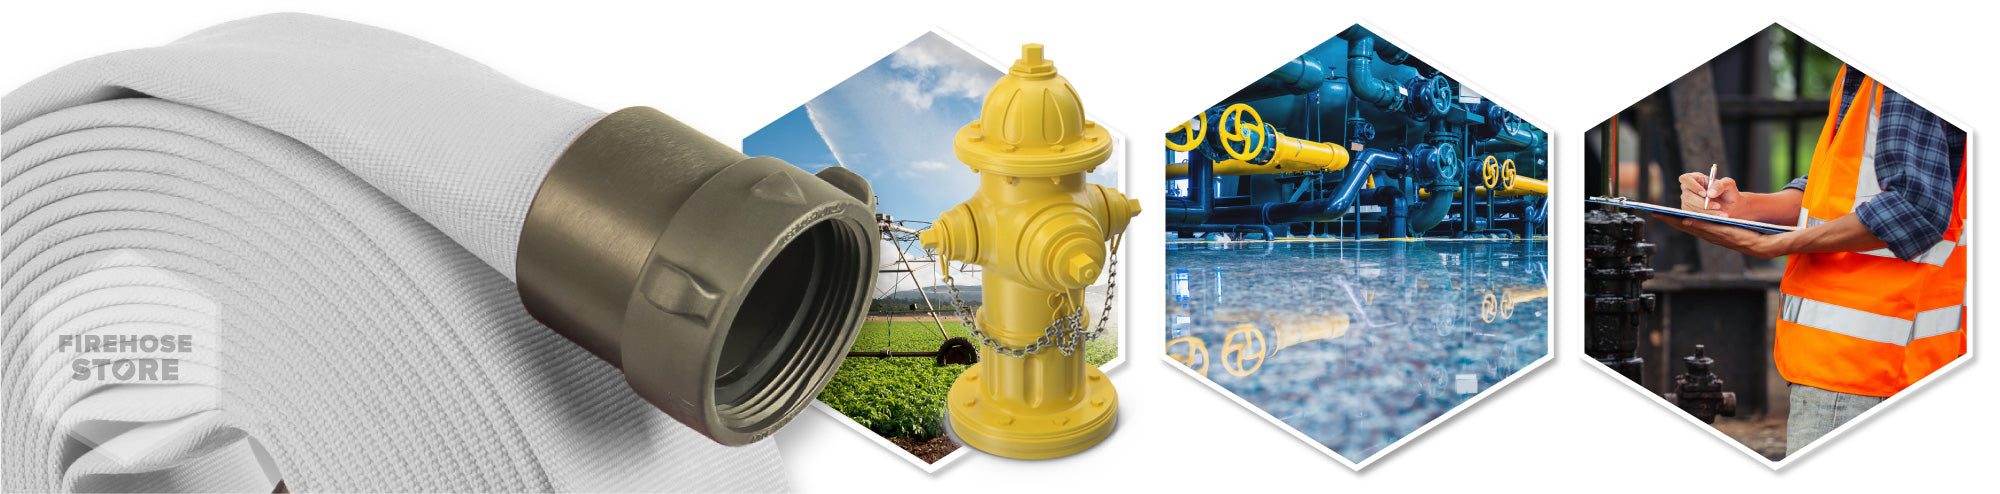 4 Inch x 50 Feet Fire Hydrant Hose Graphic Overview